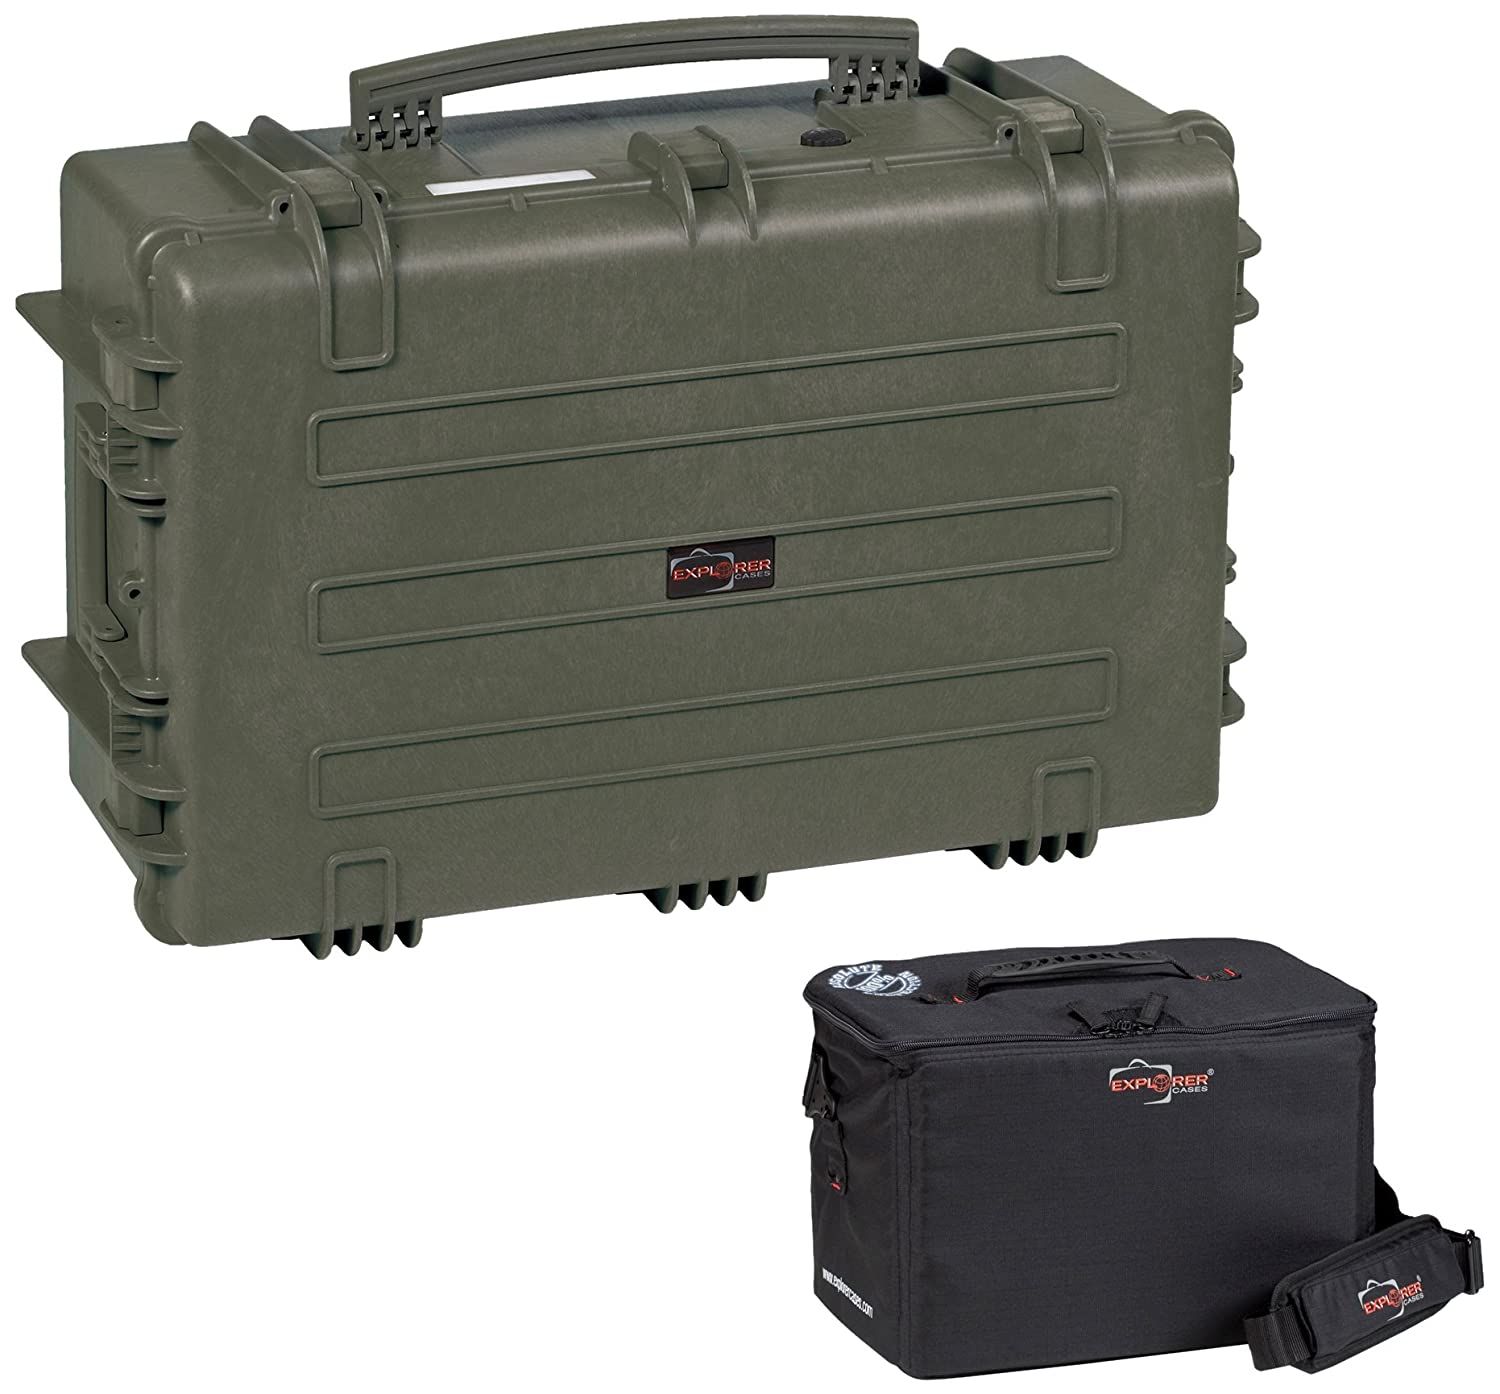 Explorer Cases 7630ktgl 7630 Case With Custom Removable Nanuk Padded Divider Insert For 915 Bag Cameras Or Similar Electronic Gear And Organizer Lid Panel